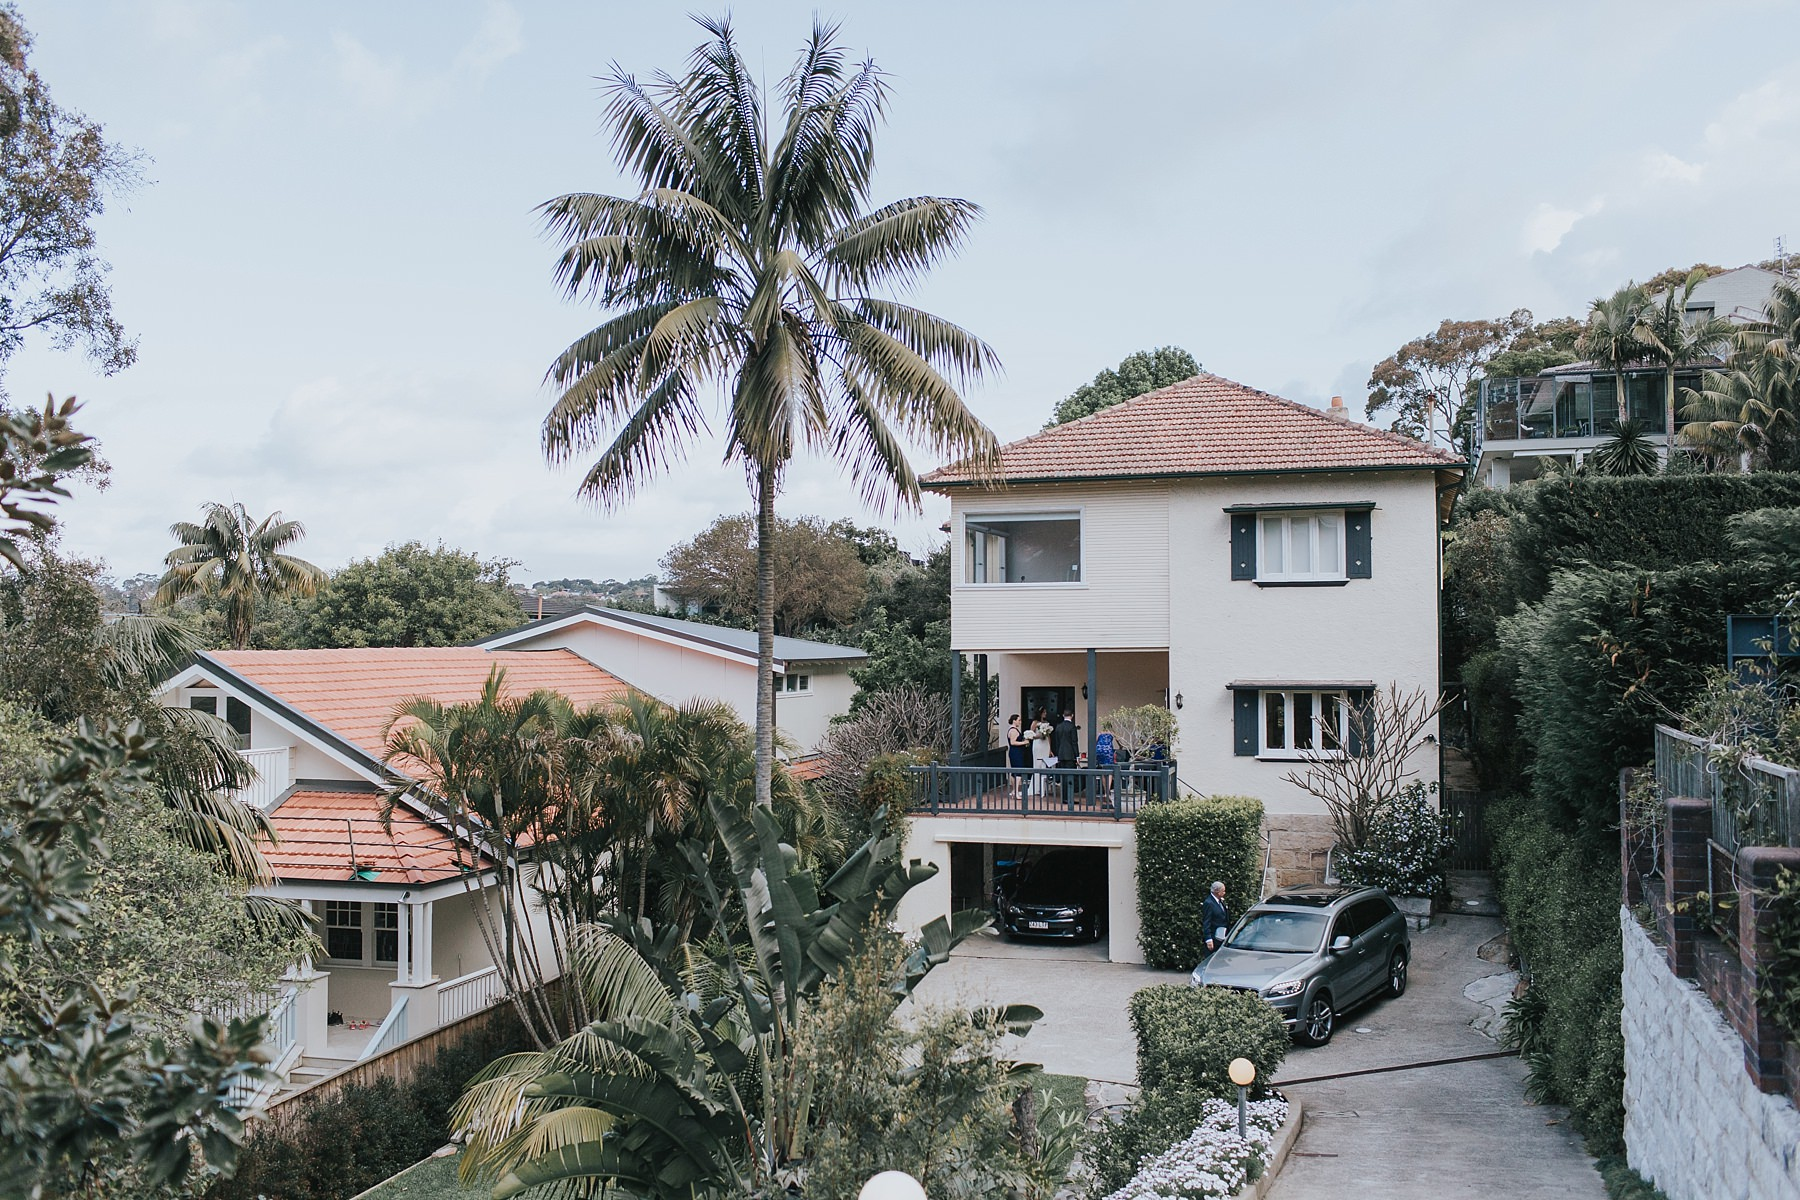 mosman beach house used for wedding day